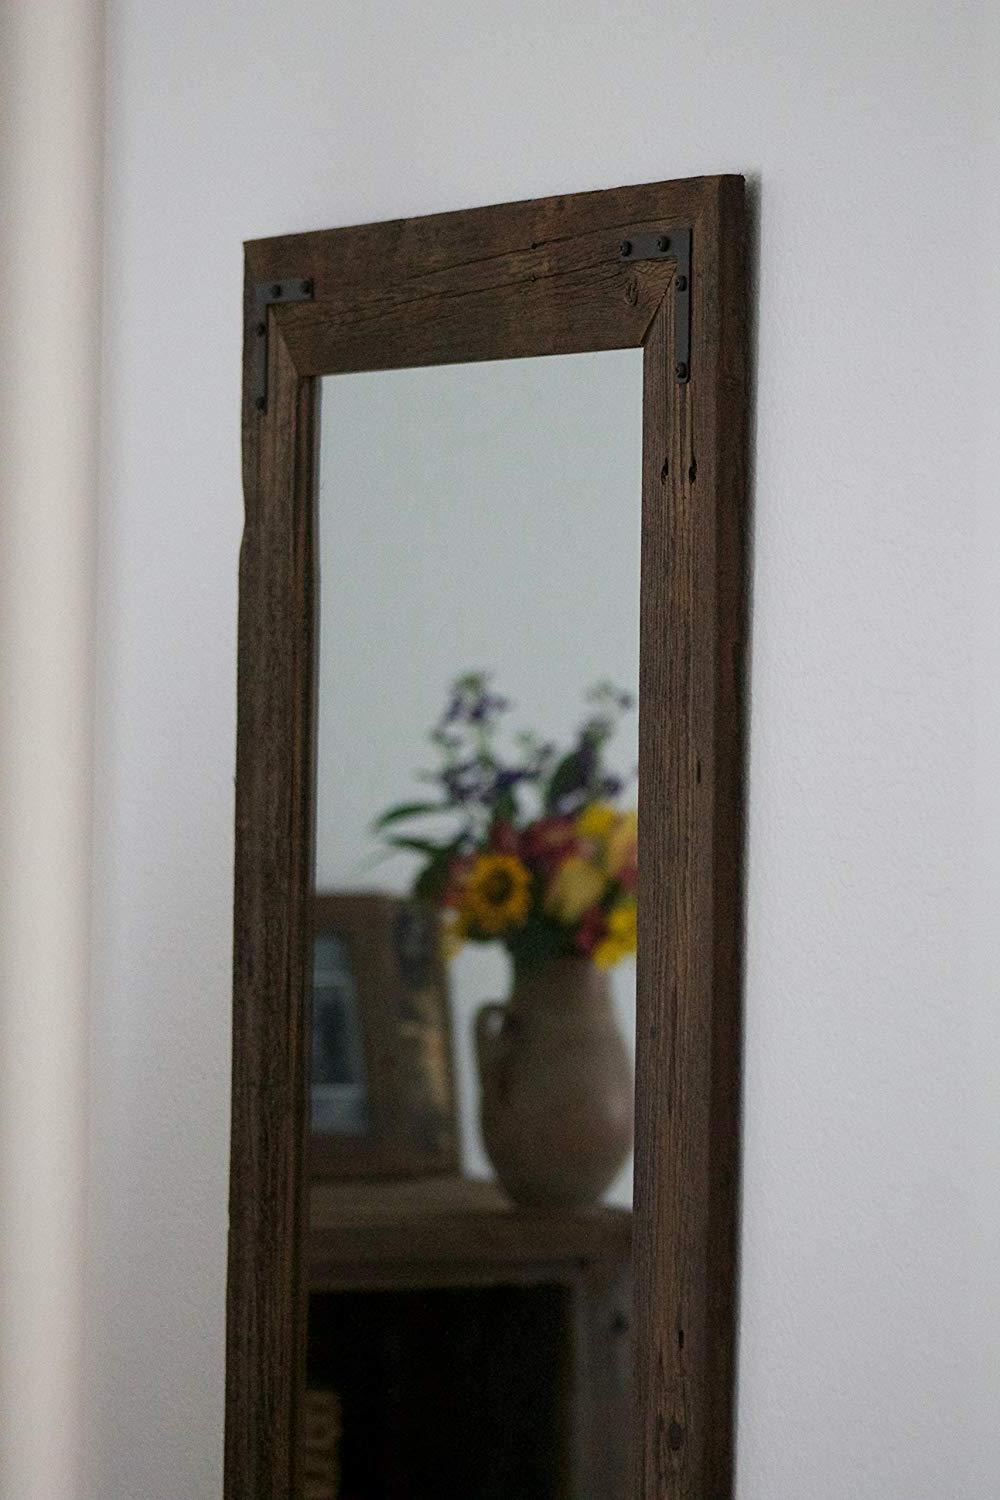 Rustic Wall Mirrors Intended For Most Current Rustic Wall Mirror – Large Wall Mirror – 24 X 36 Vanity Mirror – Bathroom  Mirror – Rustic Mirror – Reclaimed Wood Mirror – Bathroom Vanity (Gallery 8 of 20)